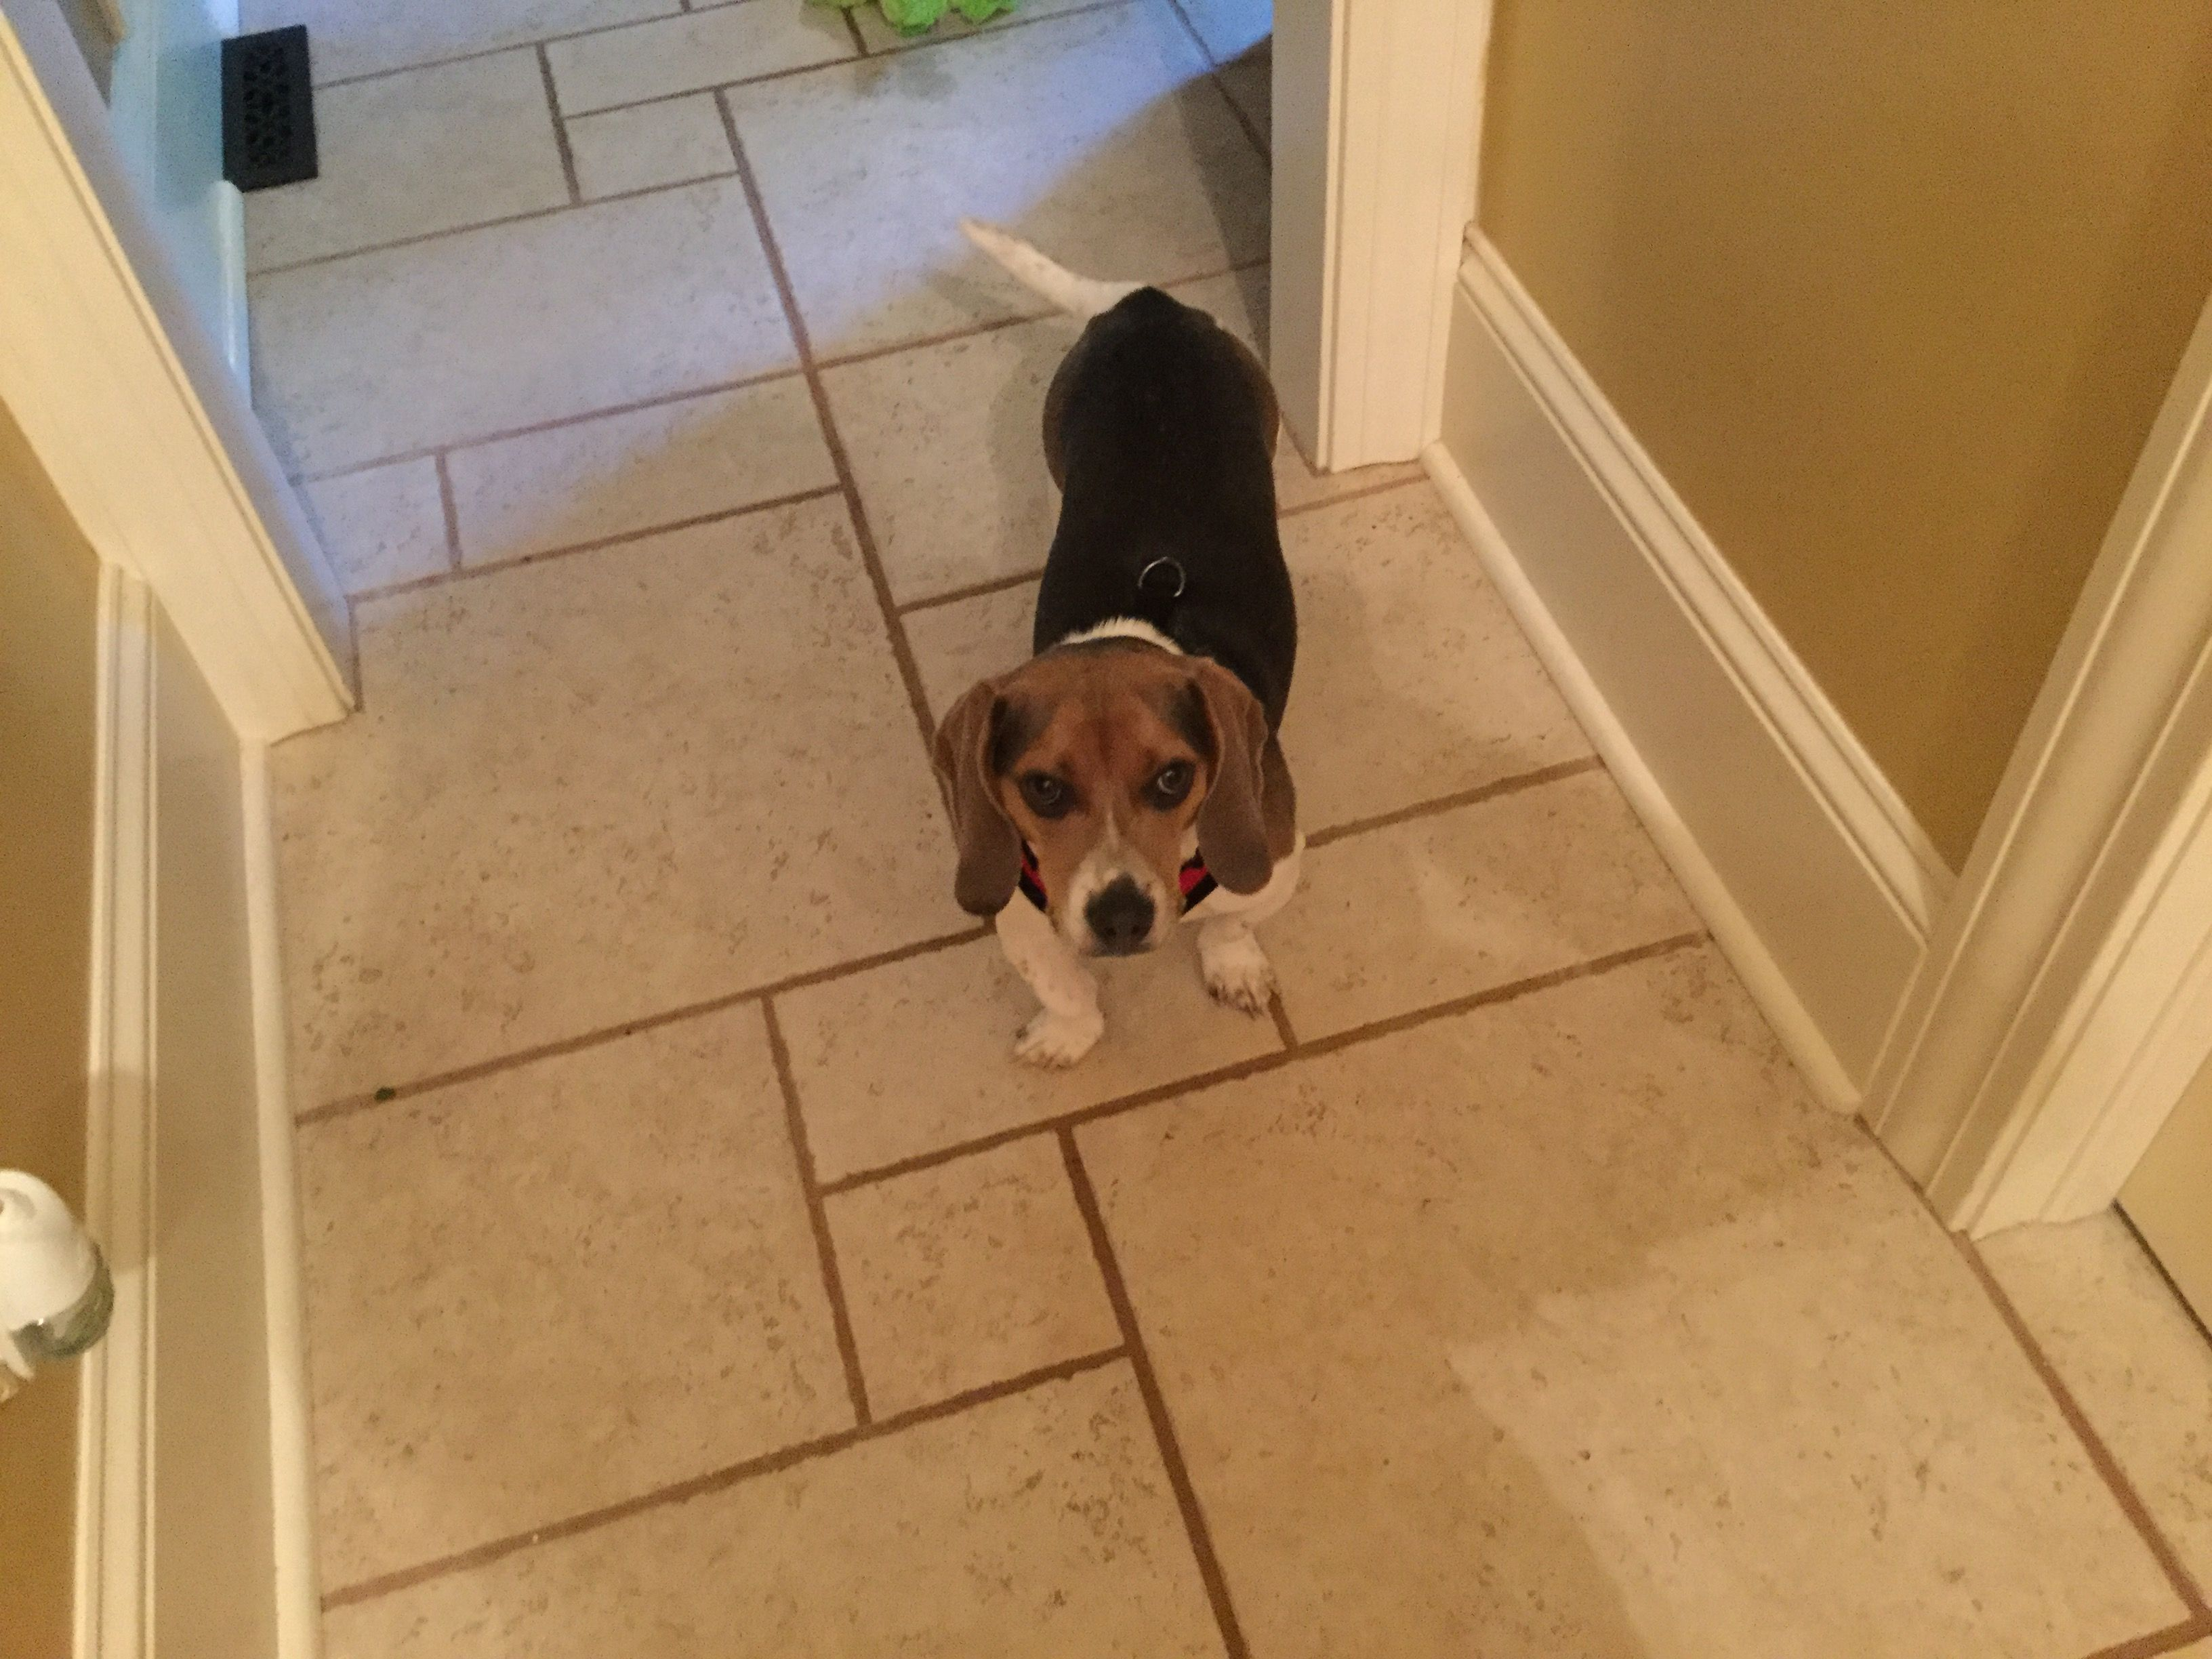 This Is My Puppy Chester He S A Pocket Beagle I Love Him So Much Pocket Beagle I Love Him Puppies